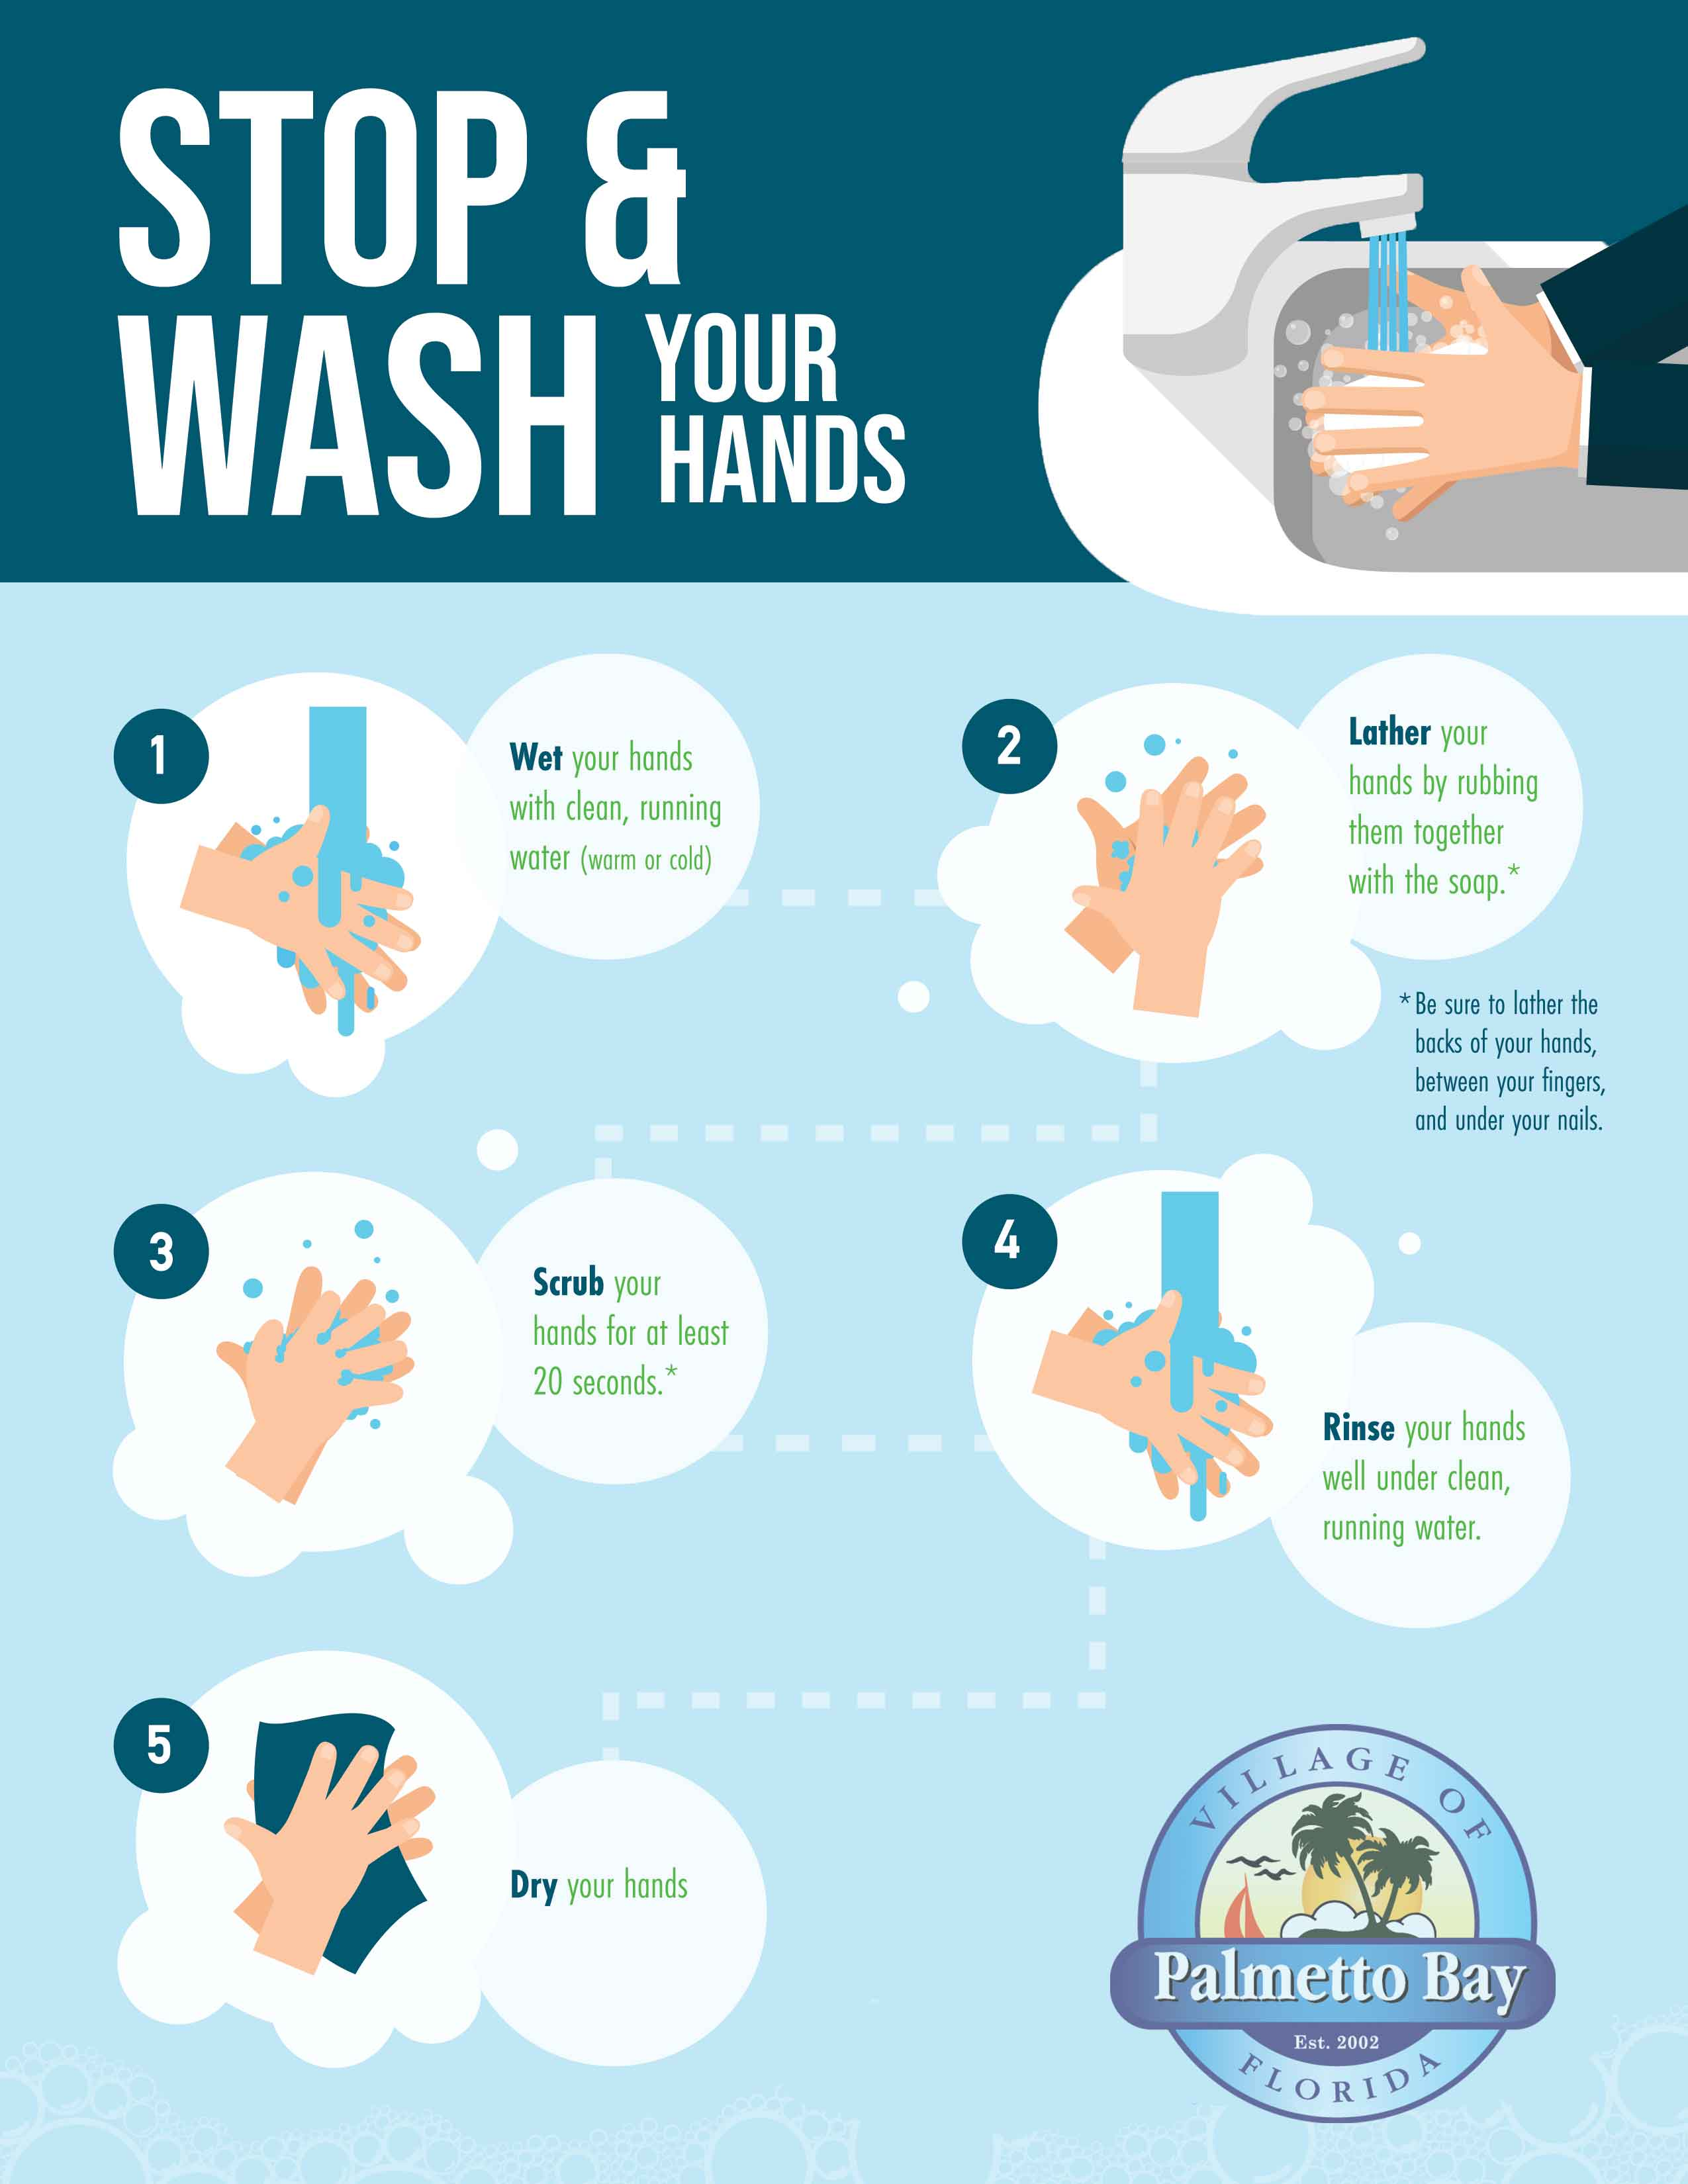 Village of Palmetto Bay wash your hands flyer